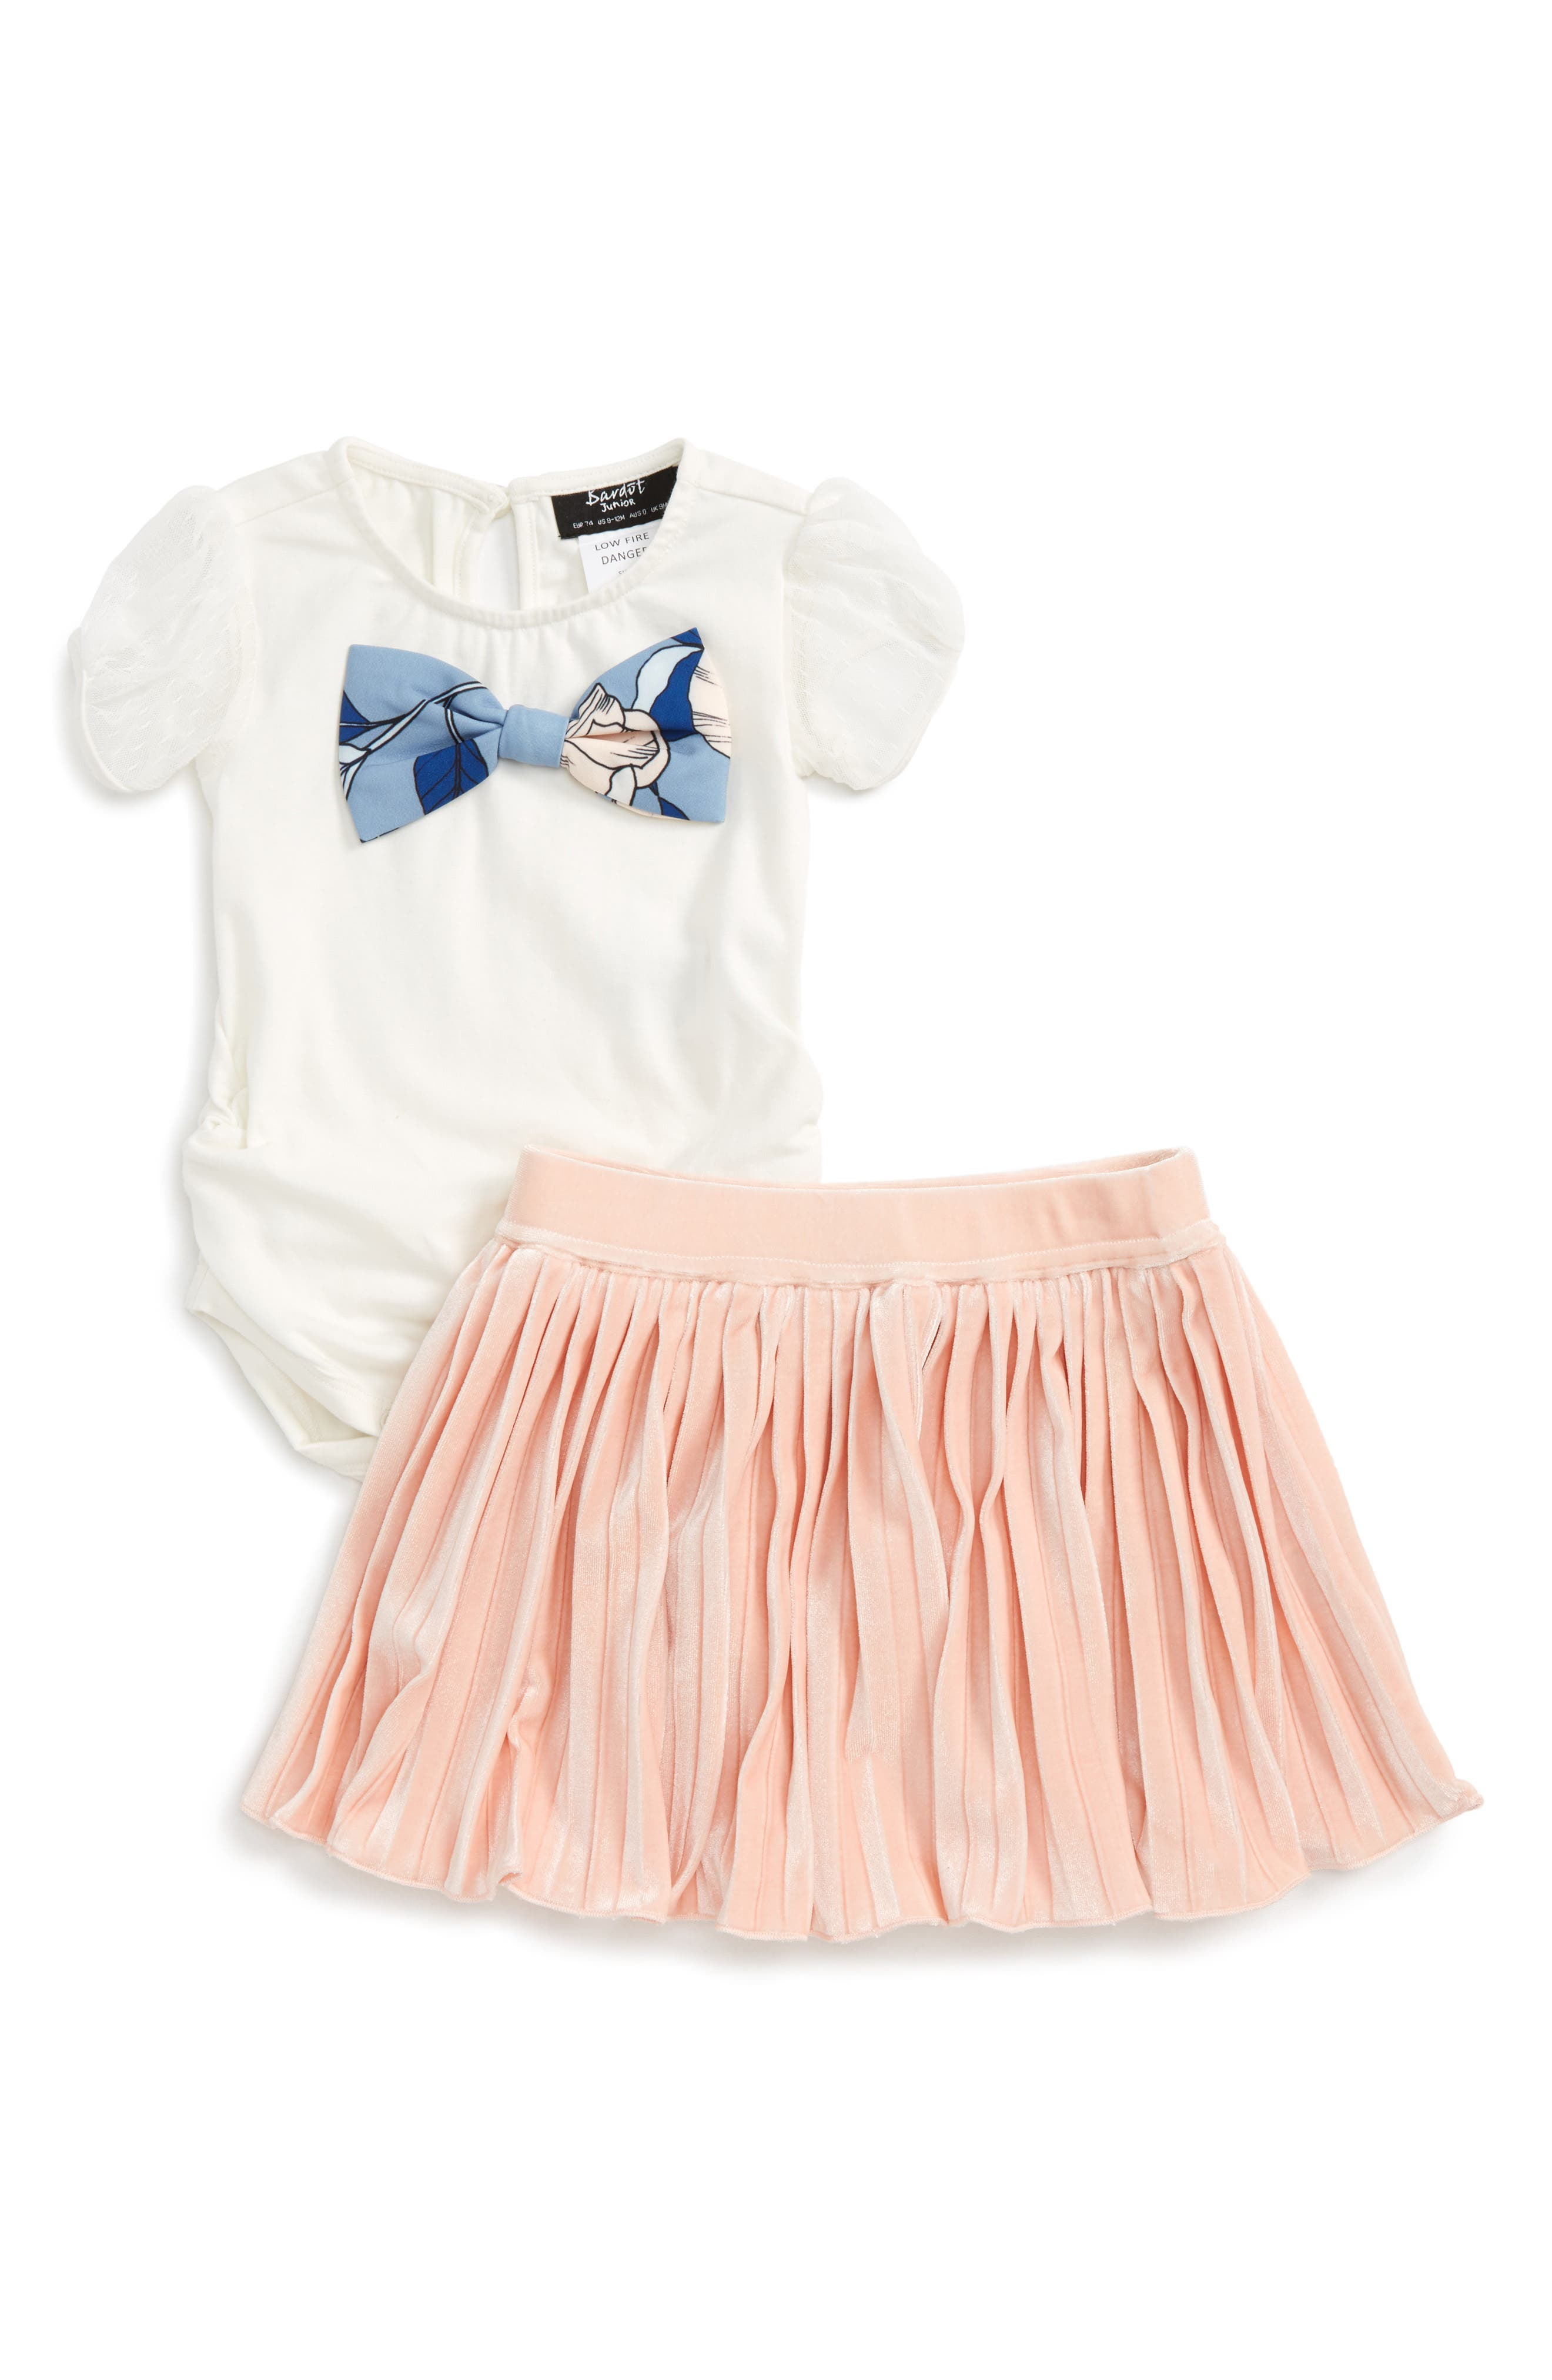 Bow Top & Pleated Skirt Set,                             Main thumbnail 1, color,                             Ivory/ Pale Pink